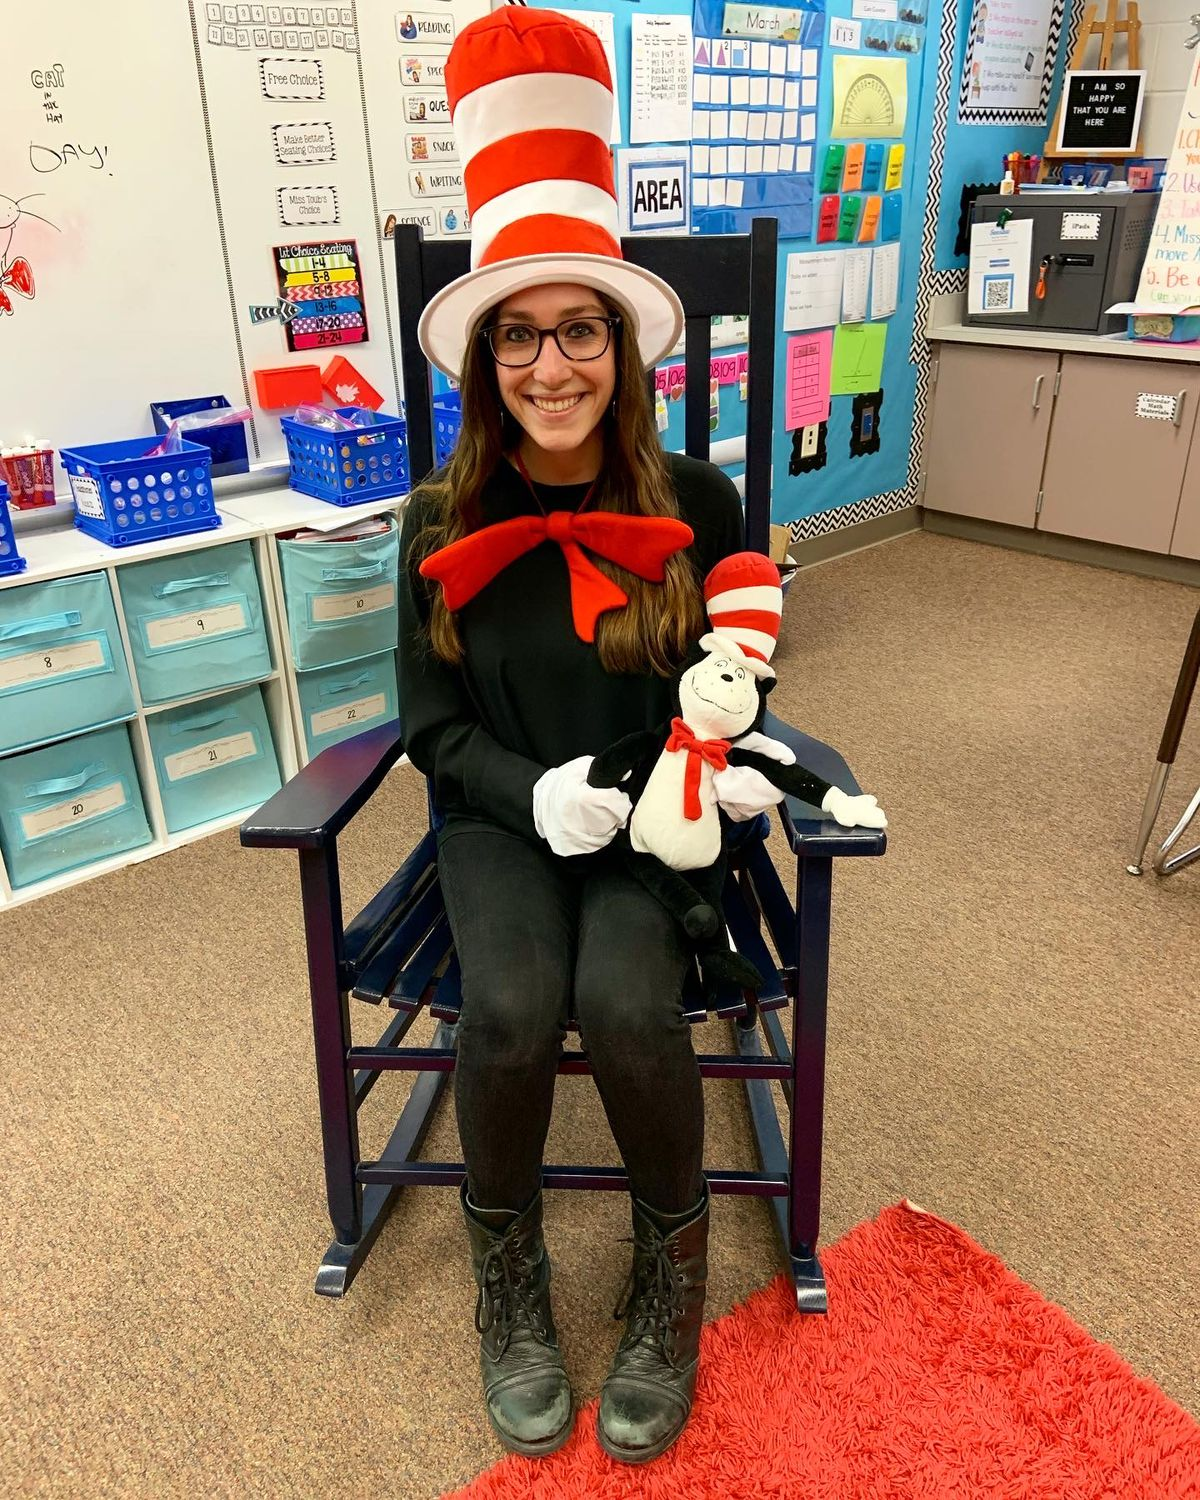 Lindsay Toub in her classroom.